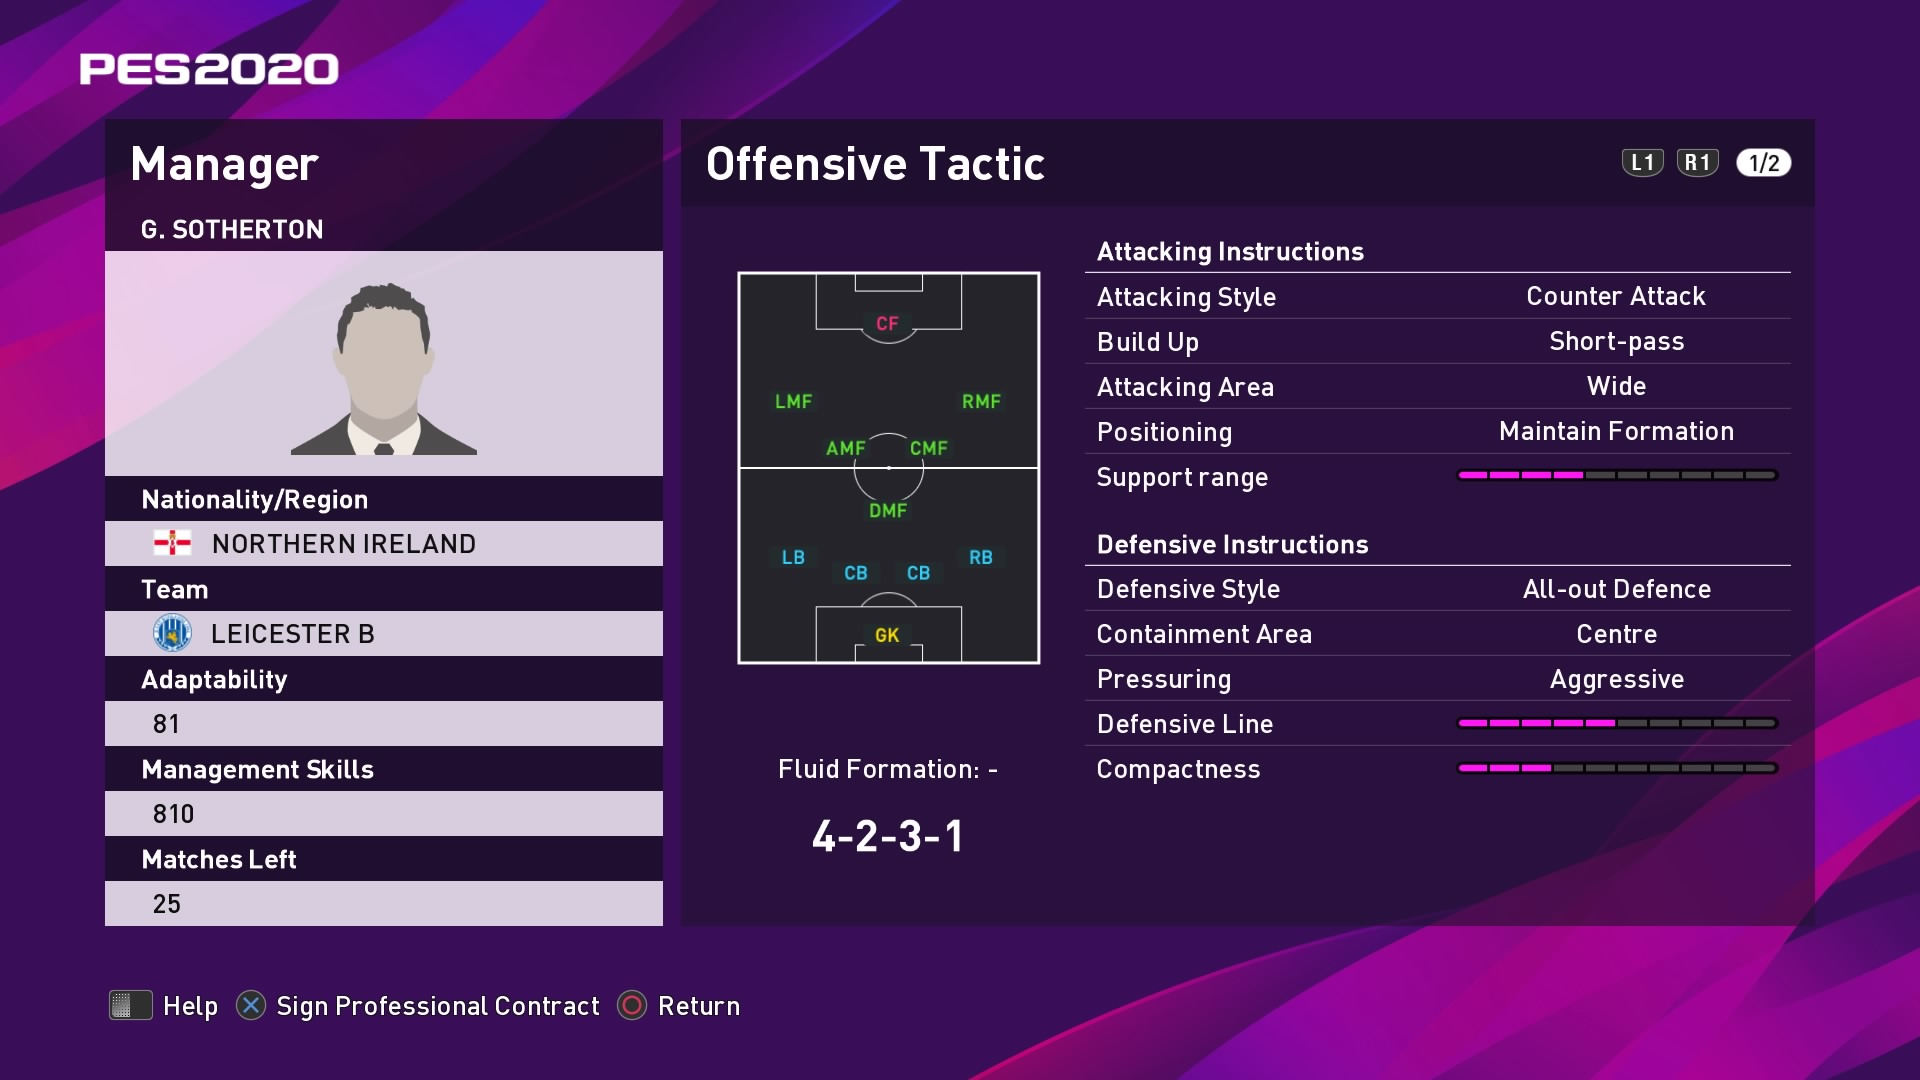 G. Sotherton (3) (Brendan Rodgers) Offensive Tactic in PES 2020 myClub